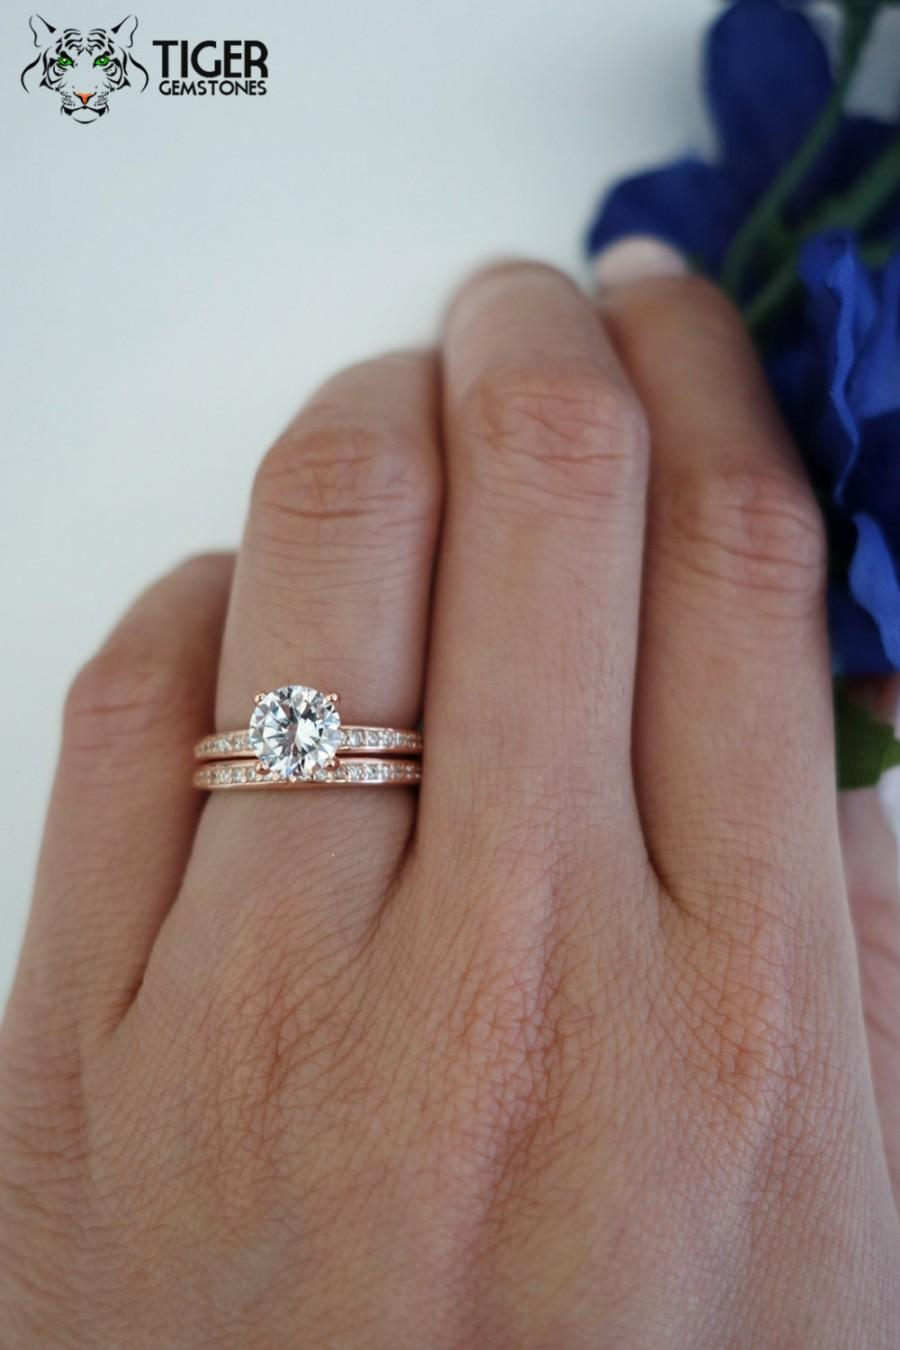 1 Carat Solitaire, 1.25 ctw Accented Wedding Set, Bridal Rings, Man Made  Diamond Simulants, Engagement Rings, Sterling Silver & Rose Gold